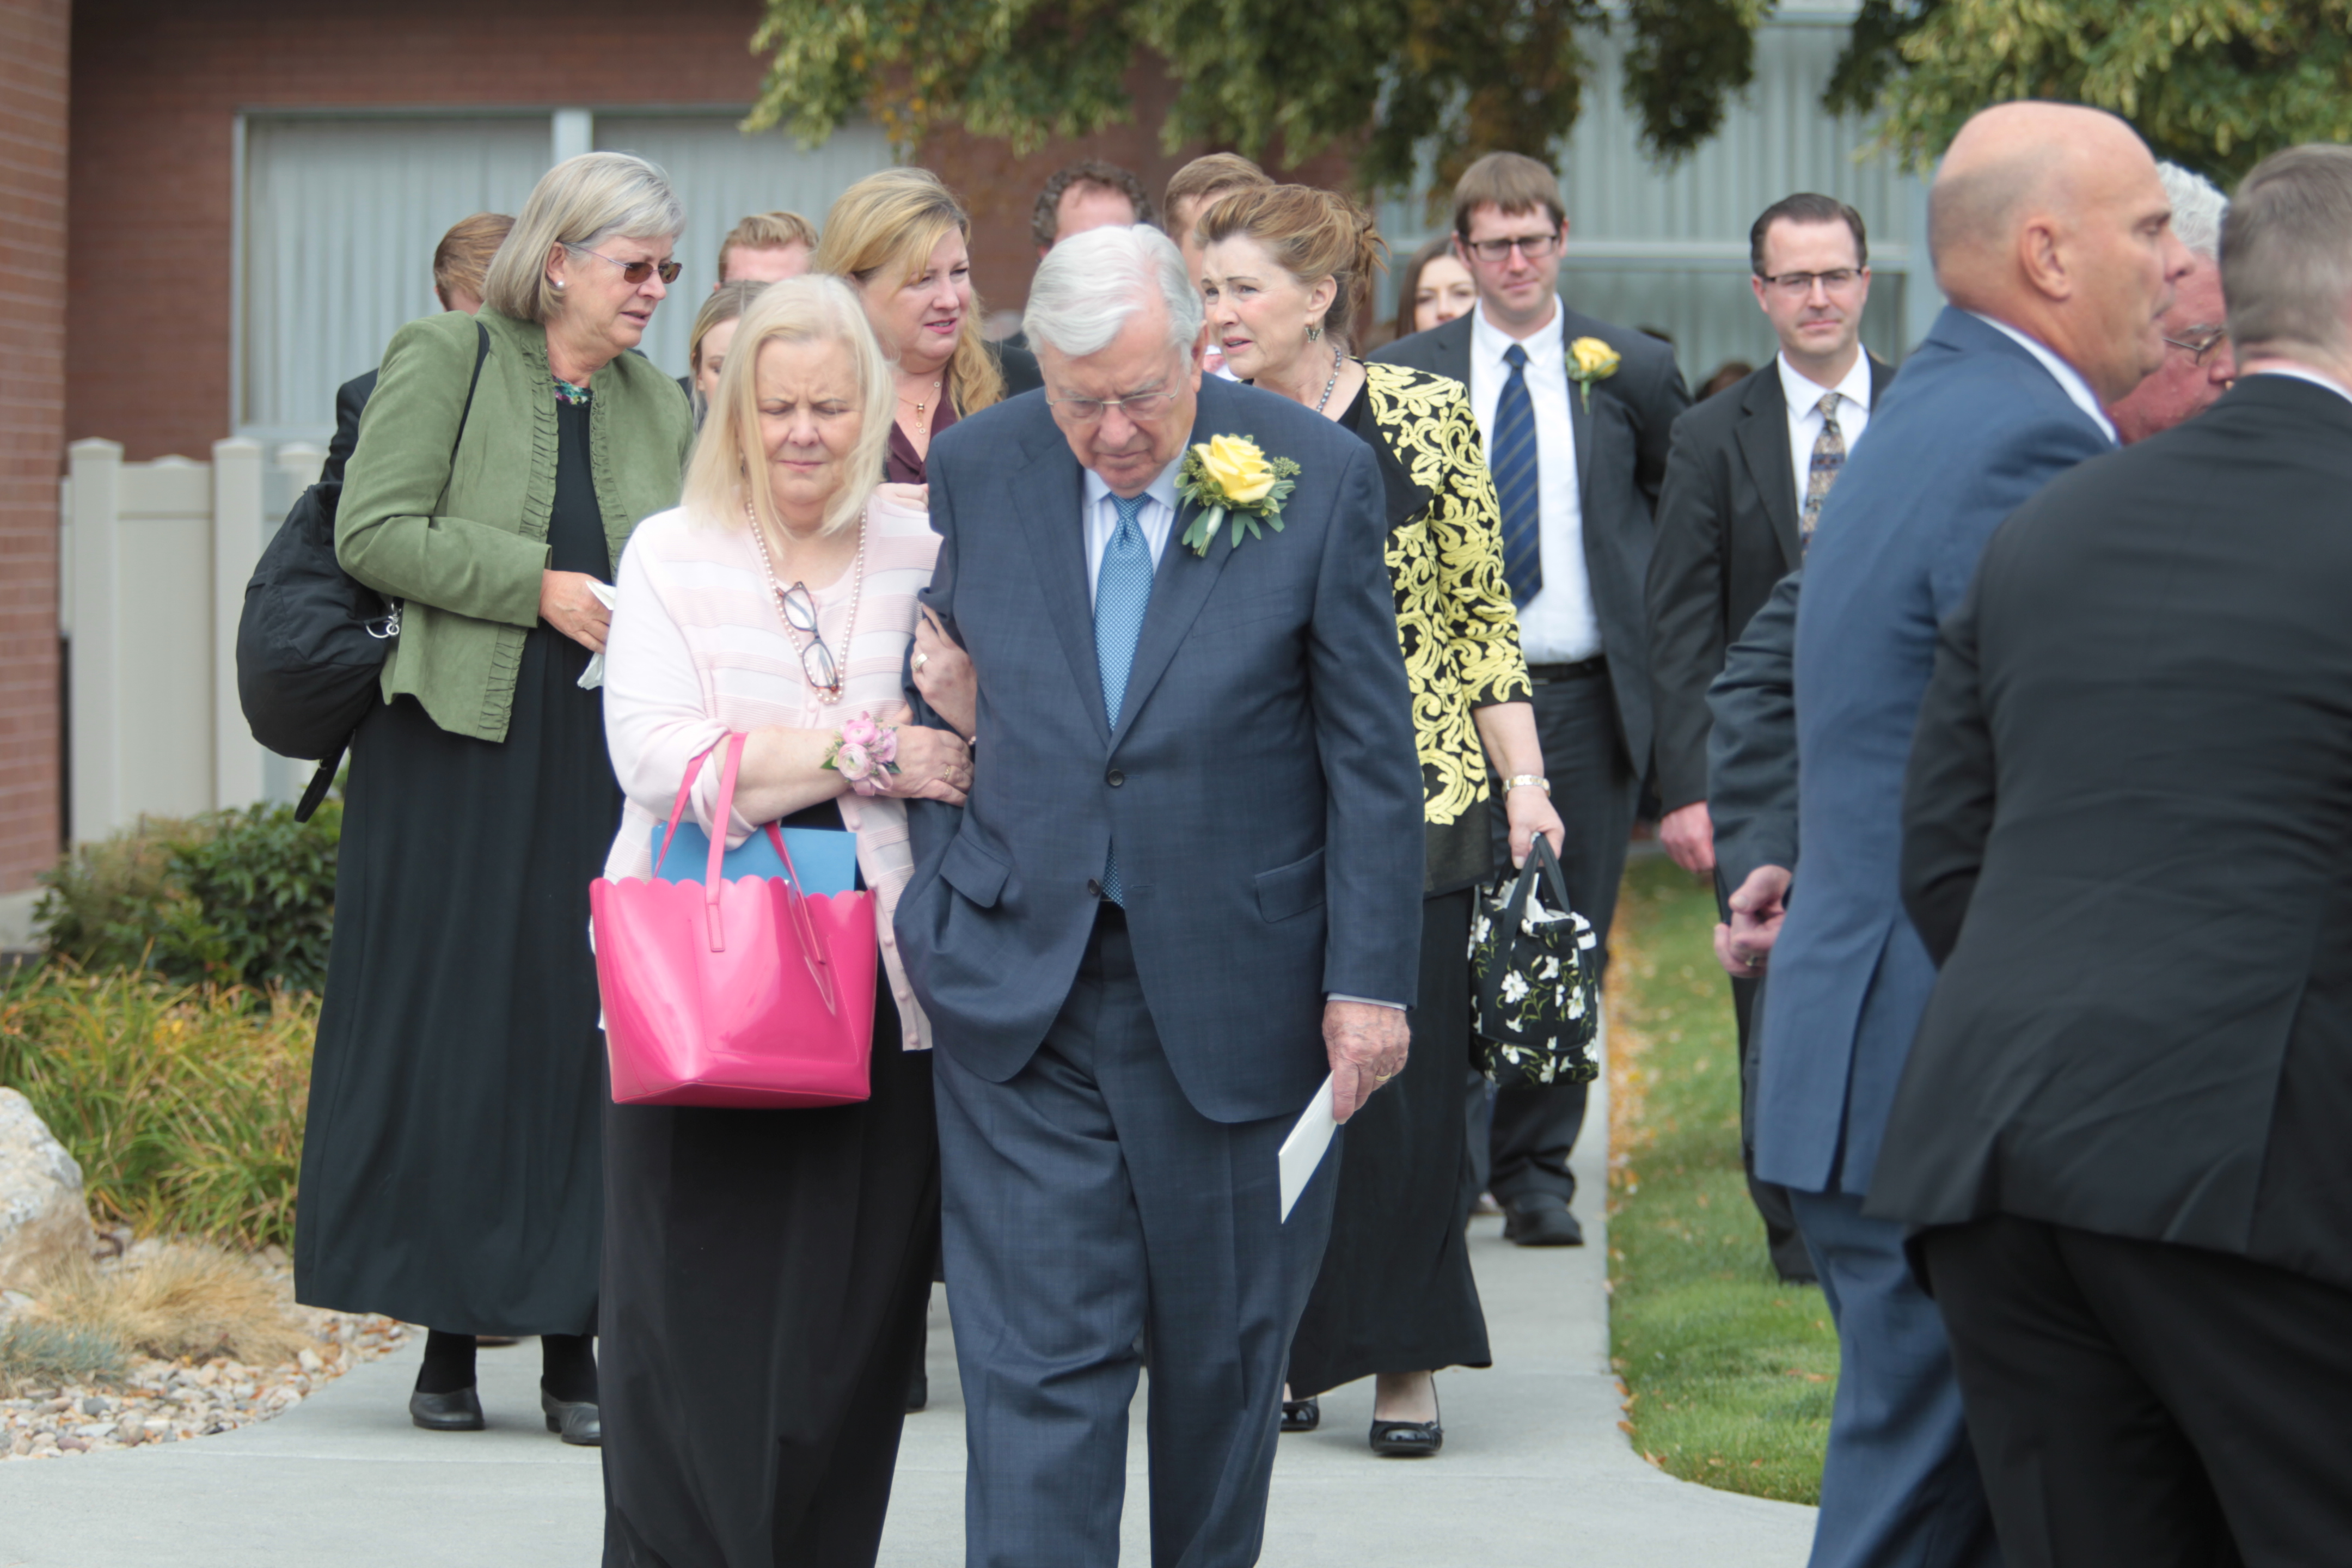 President M. Russell Ballard, acting president of the Quorum of the Twelve Apostles of The Church of Jesus Christ of Latter-day Saints, exits the meetinghouse where the funeral for his wife, Sister Barbara Ballard, was held, October 8, 2018.